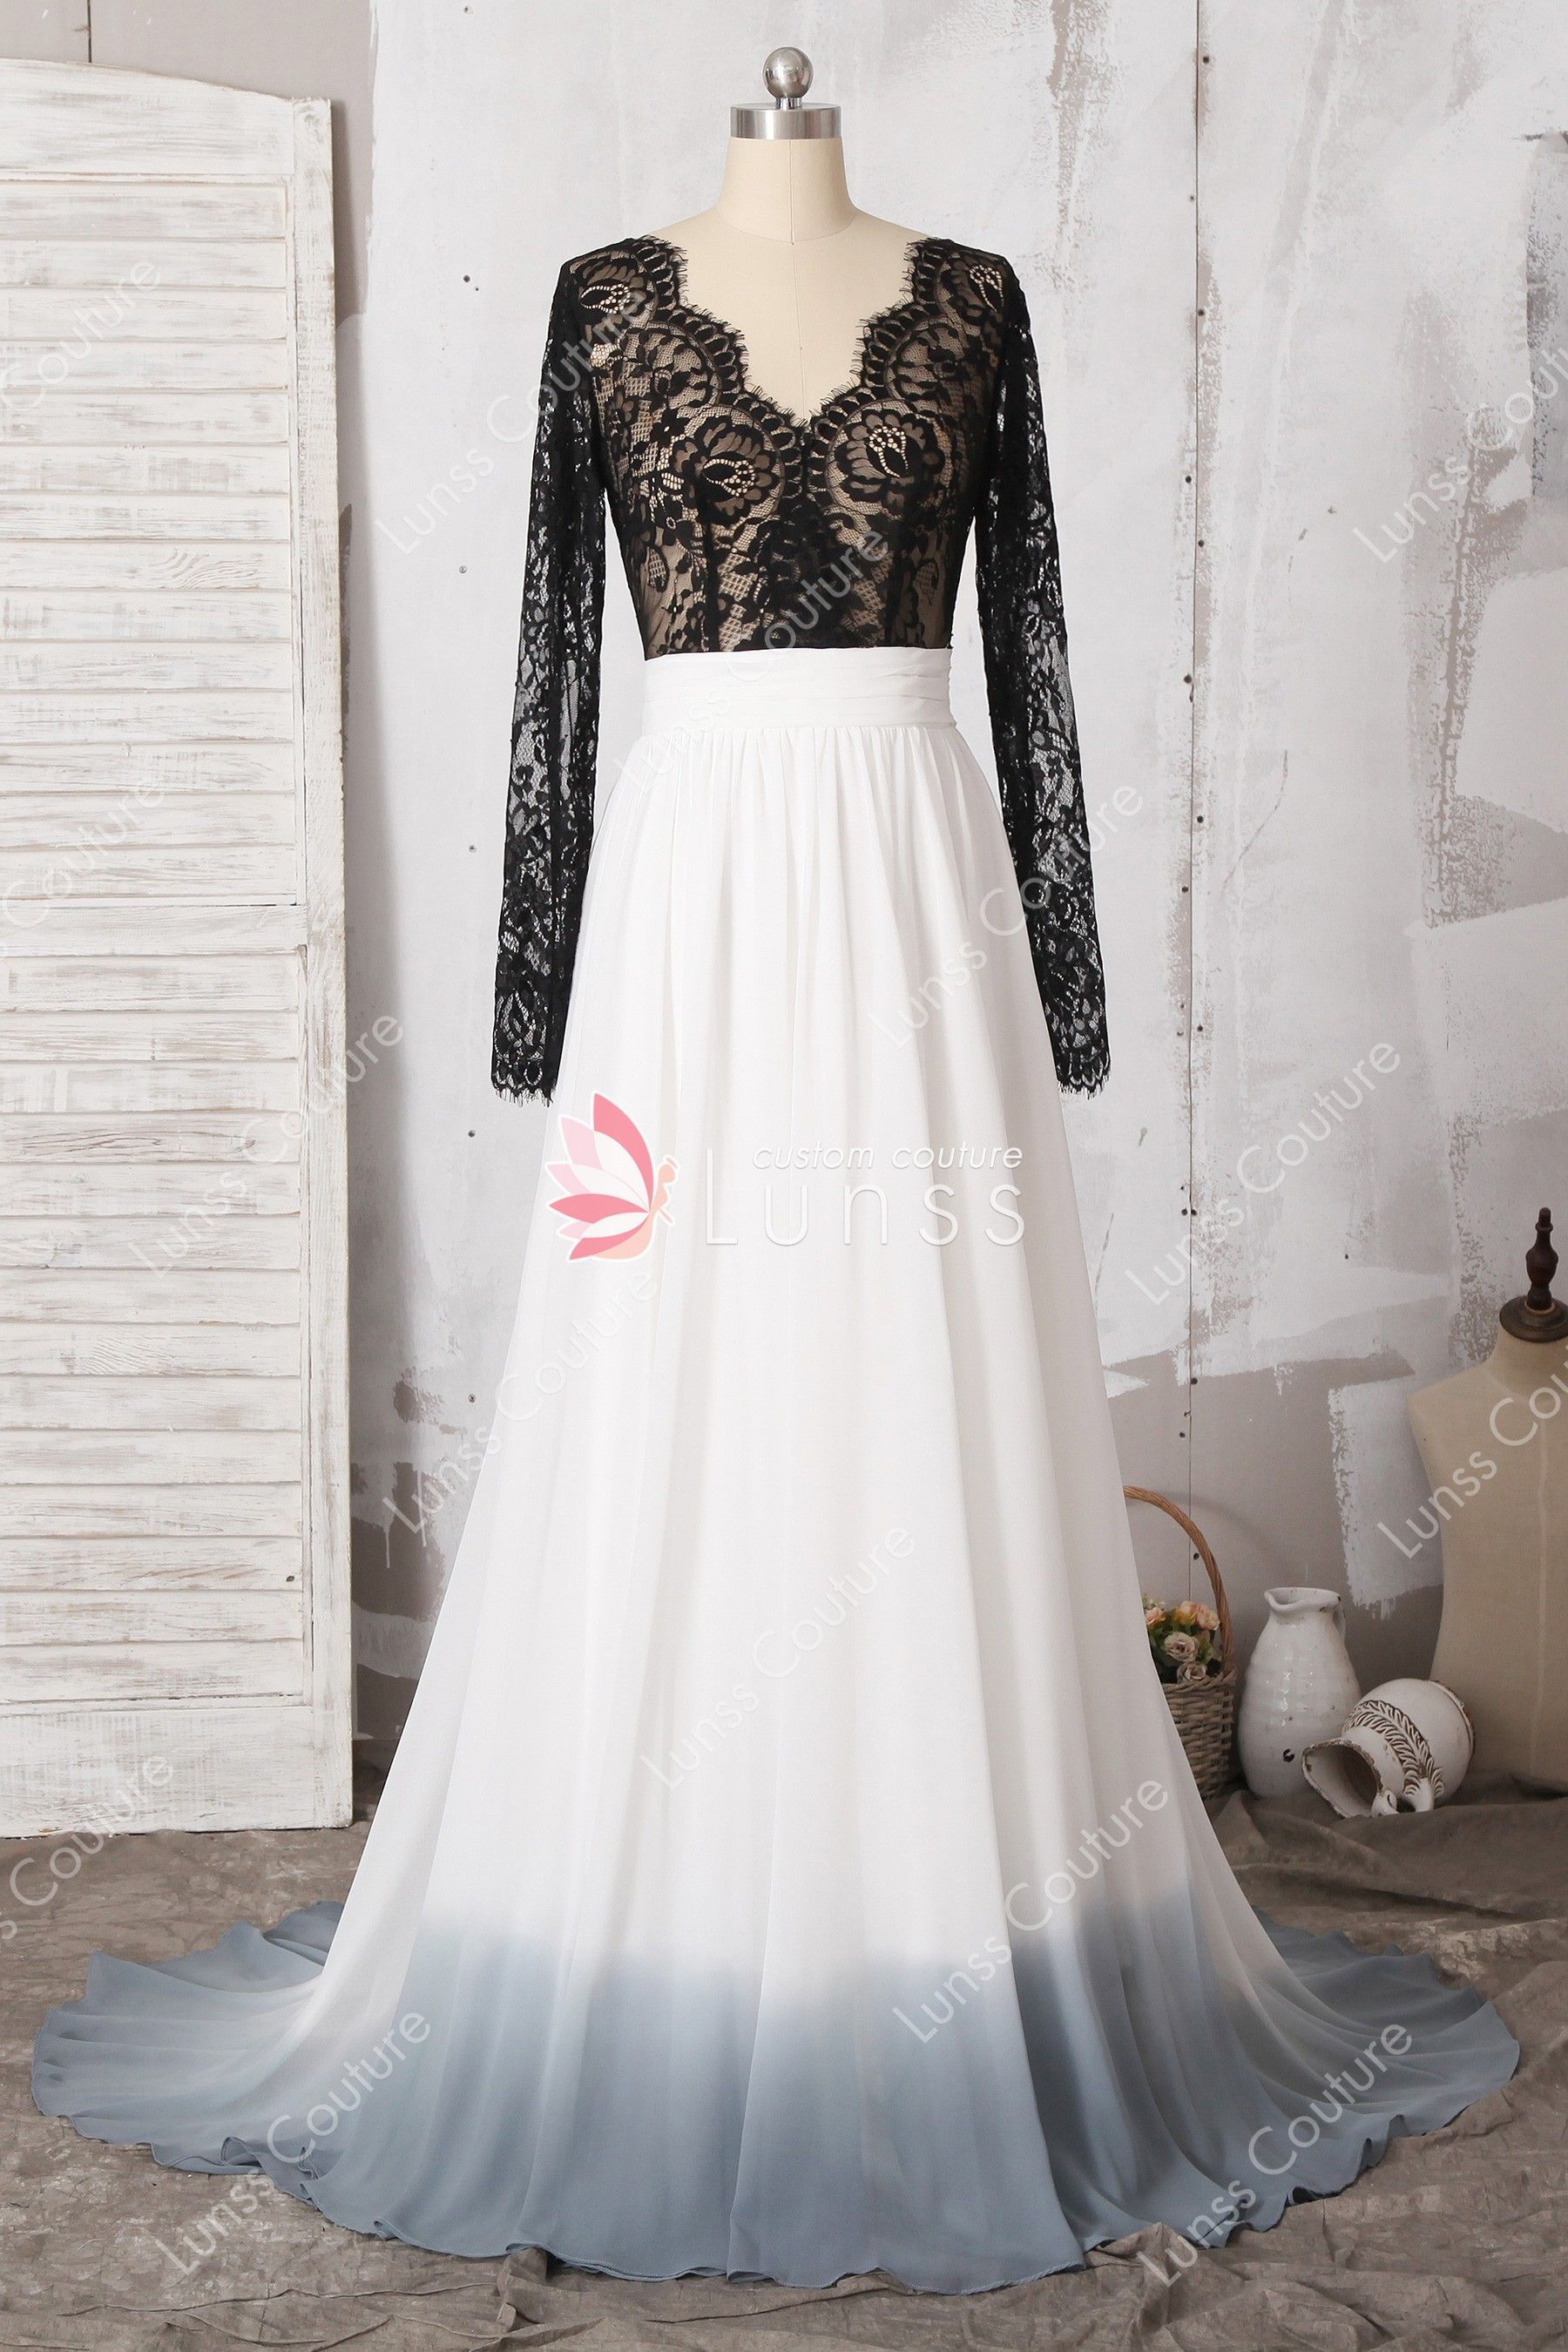 1bd49df78bf3c Homecoming Dresses · The illusion black lace bodice features long sleeves